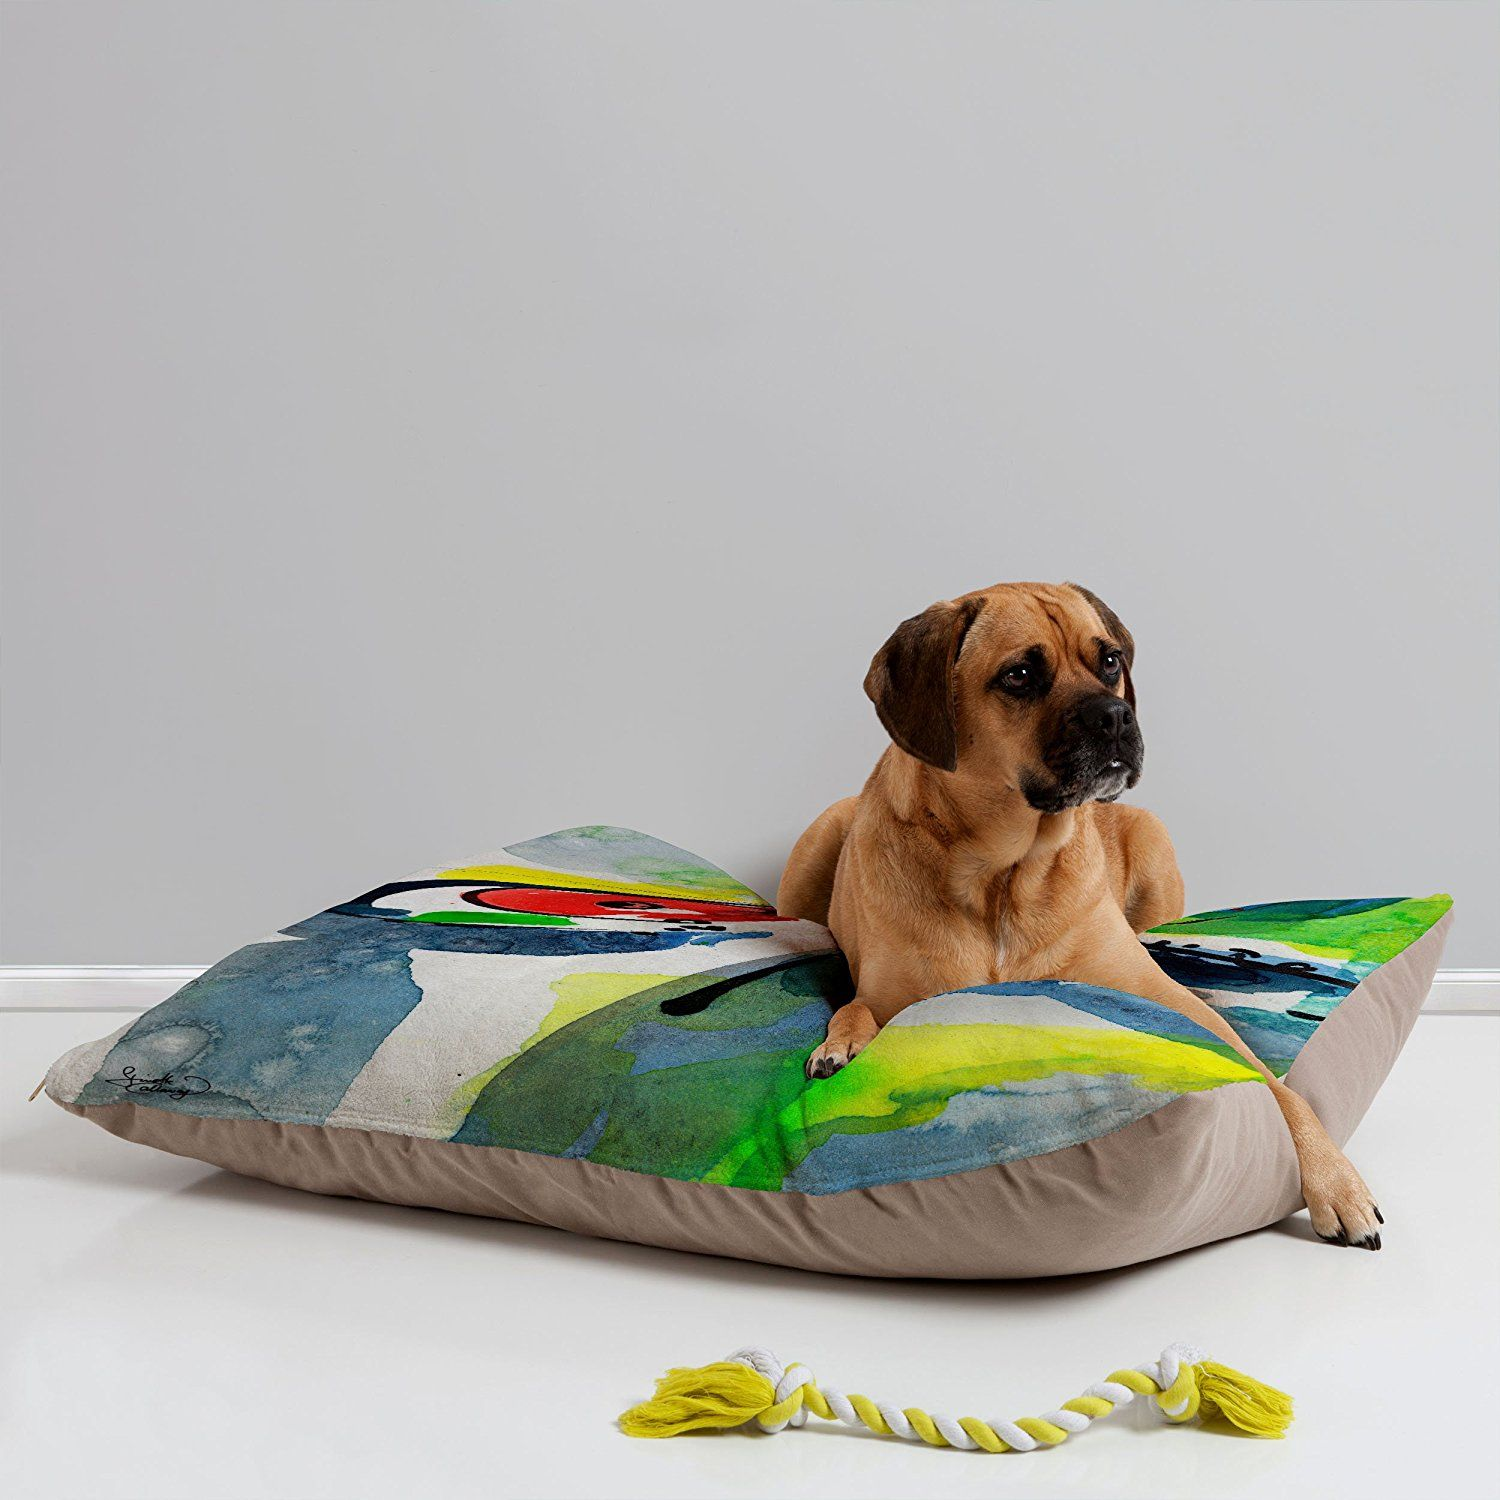 DENY Designs Fine Art Abstract Sunflowers Pet Bed